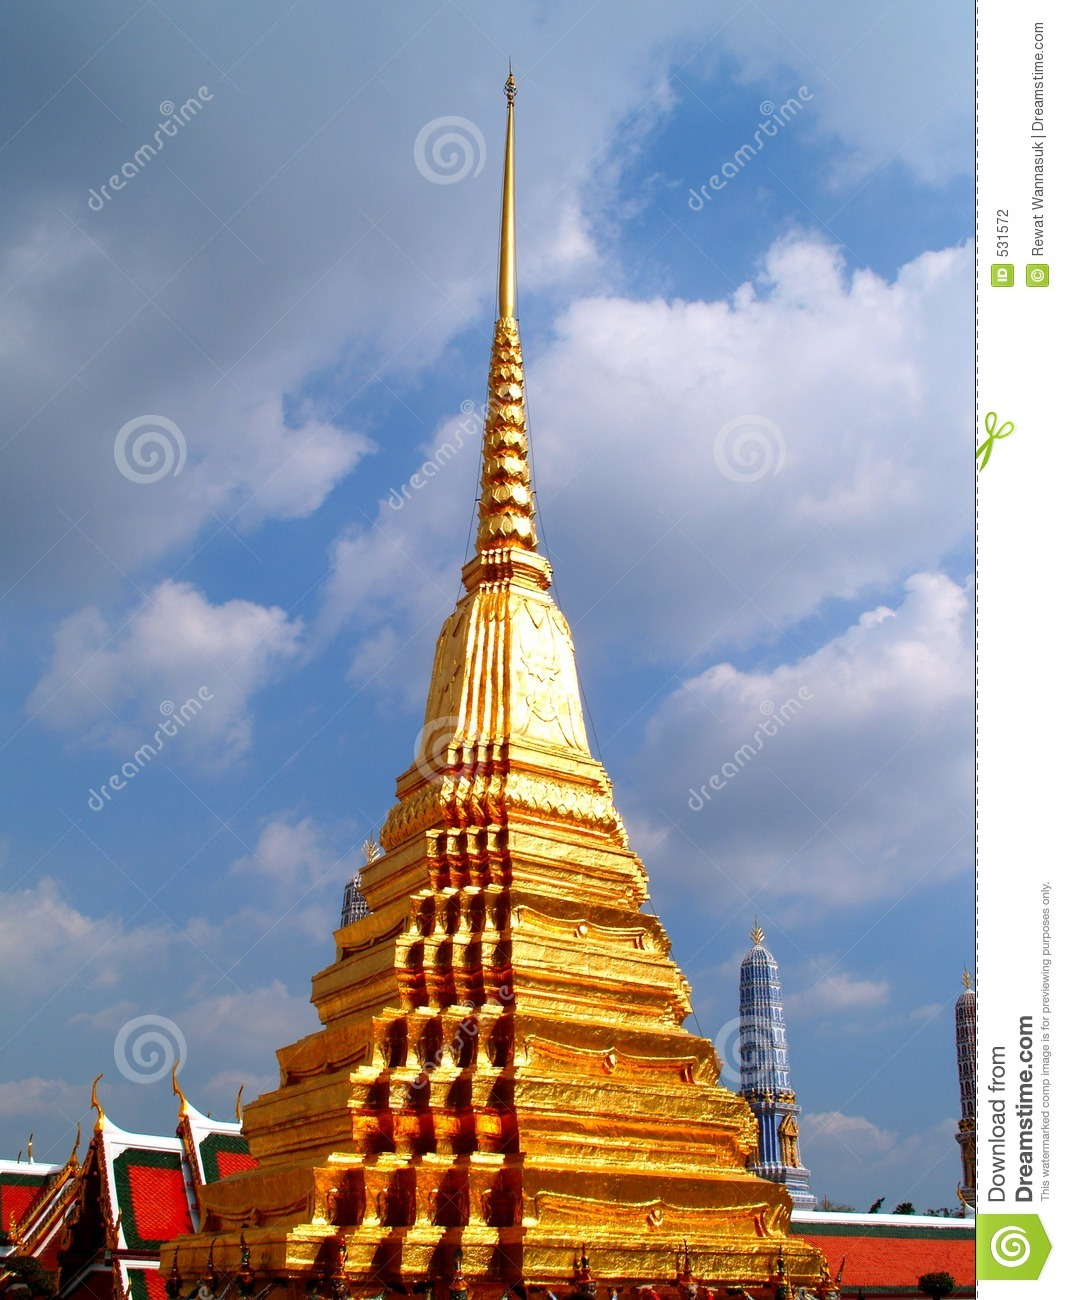 Thailand architecture style 07 stock photography image for Wat architecture